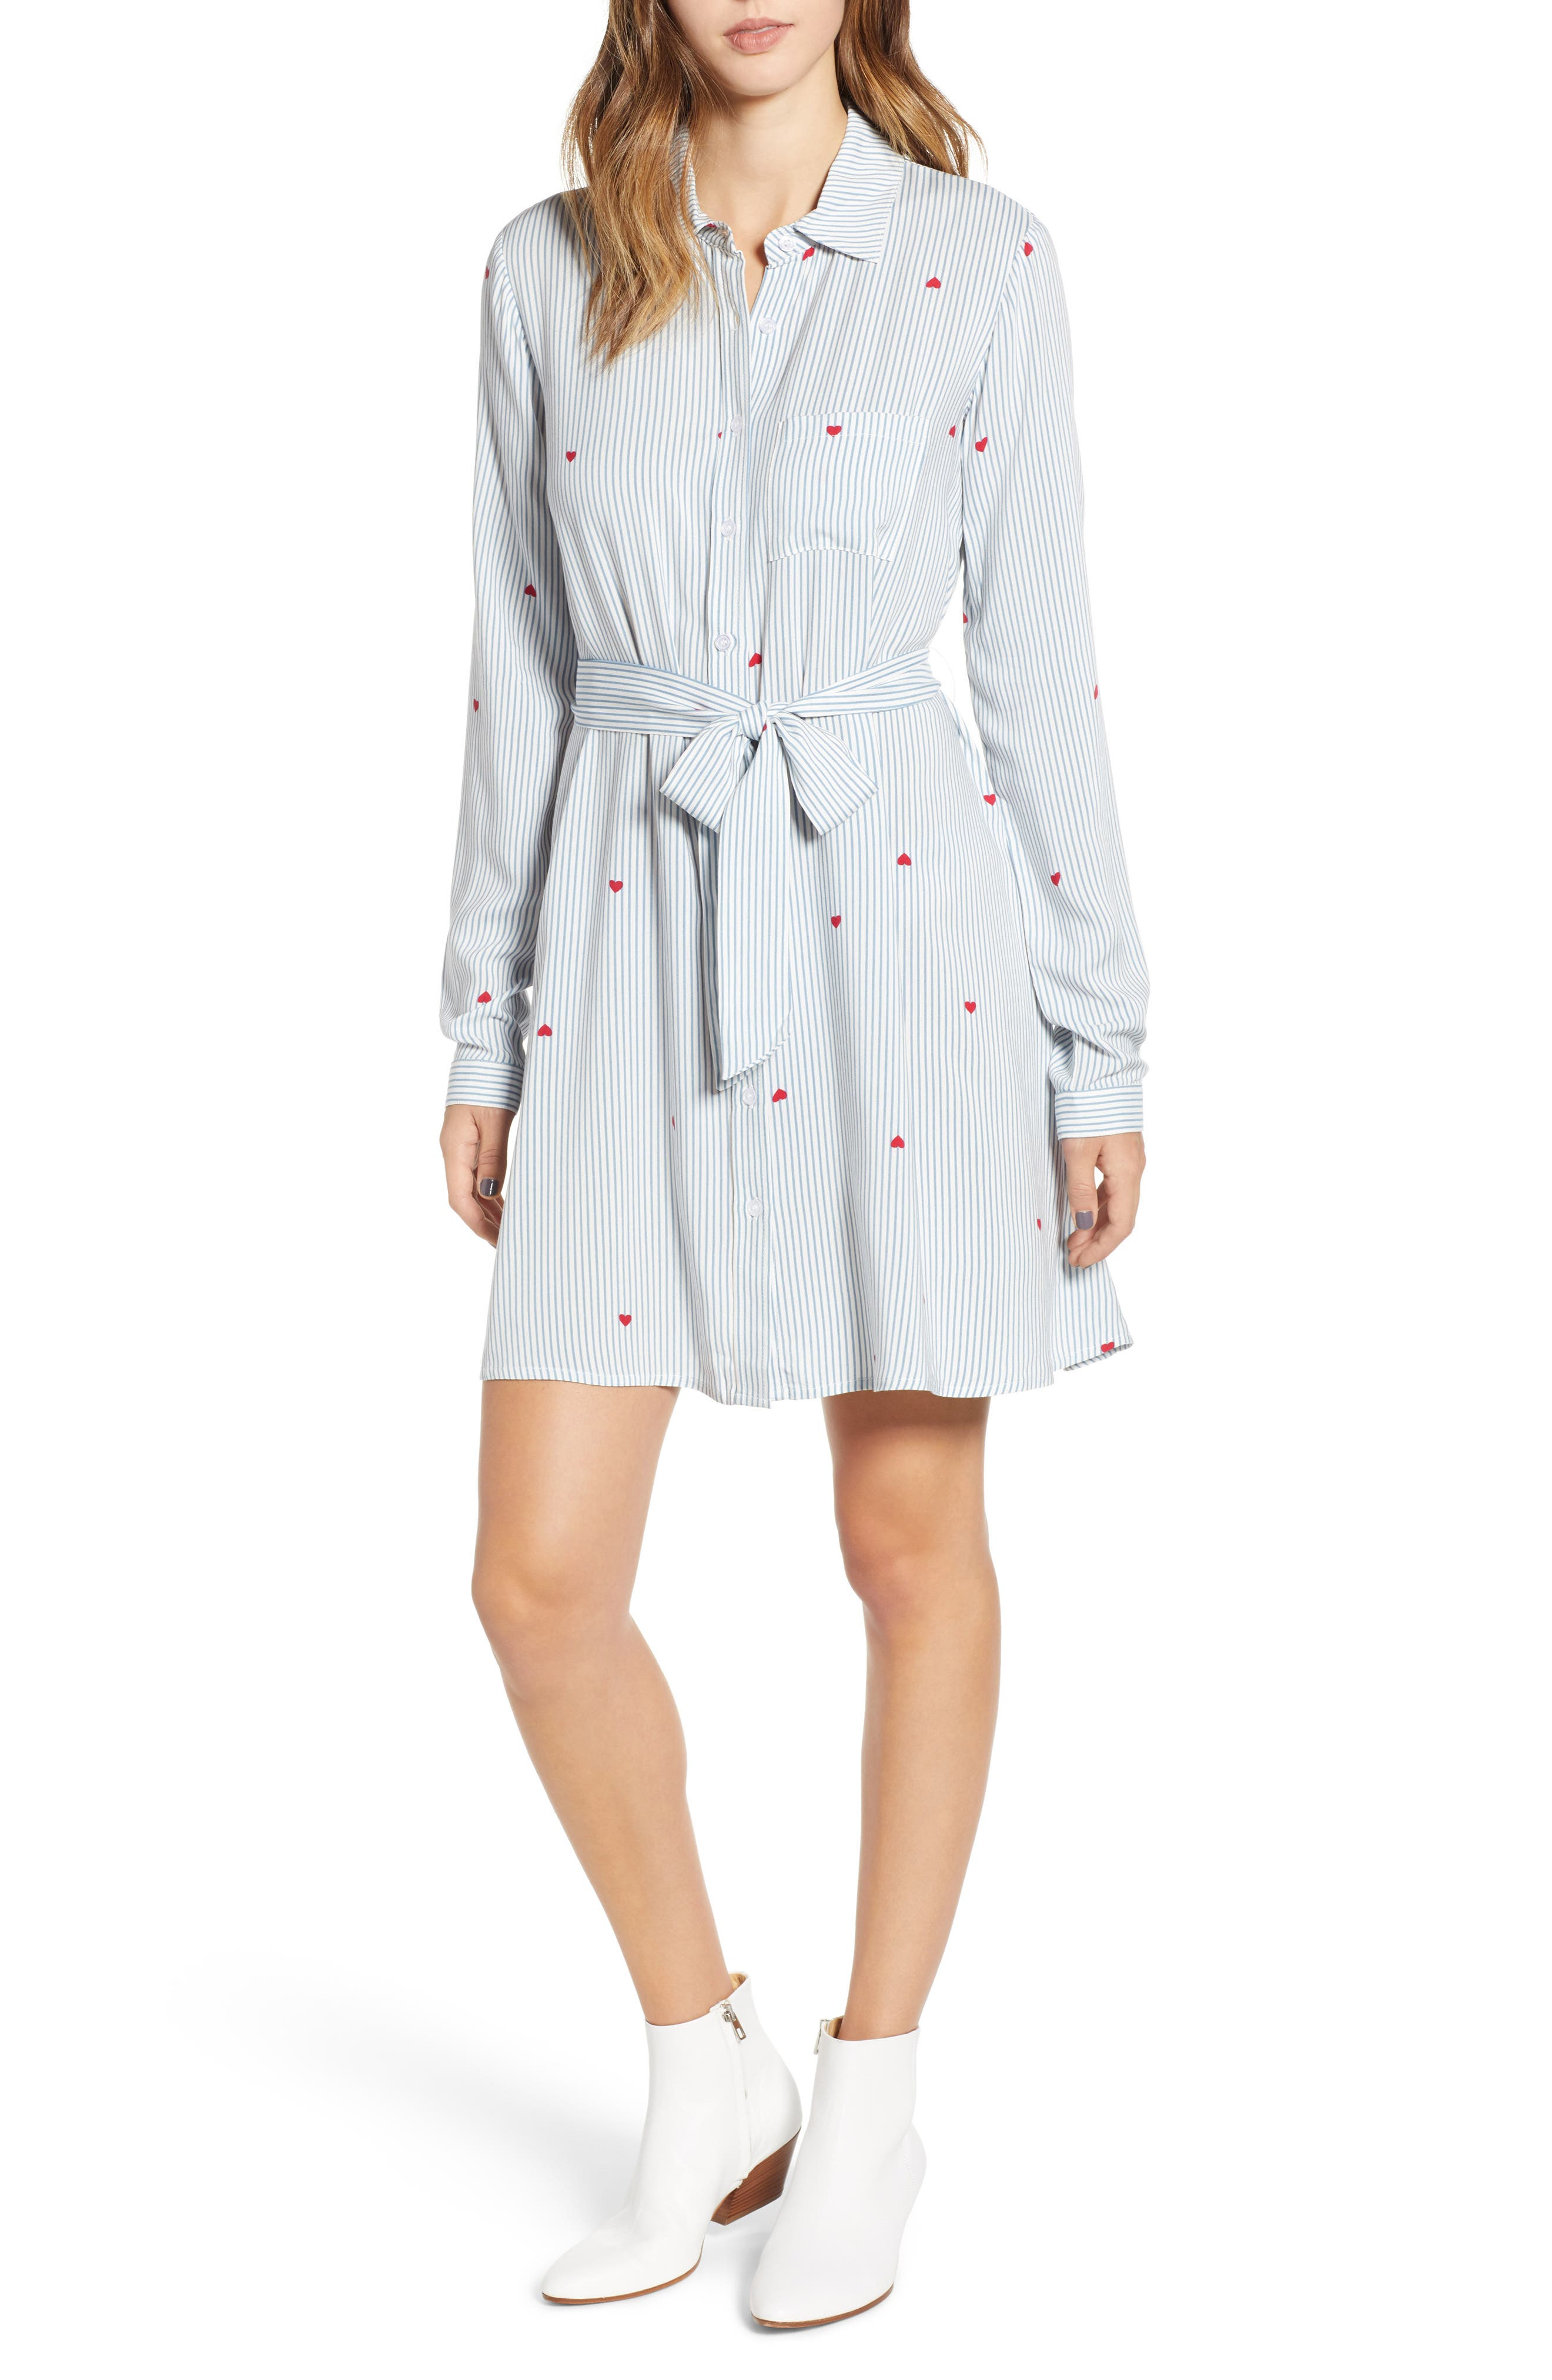 LOVE, FIRE Hattie Heart Shirtdress, Main, color, 400